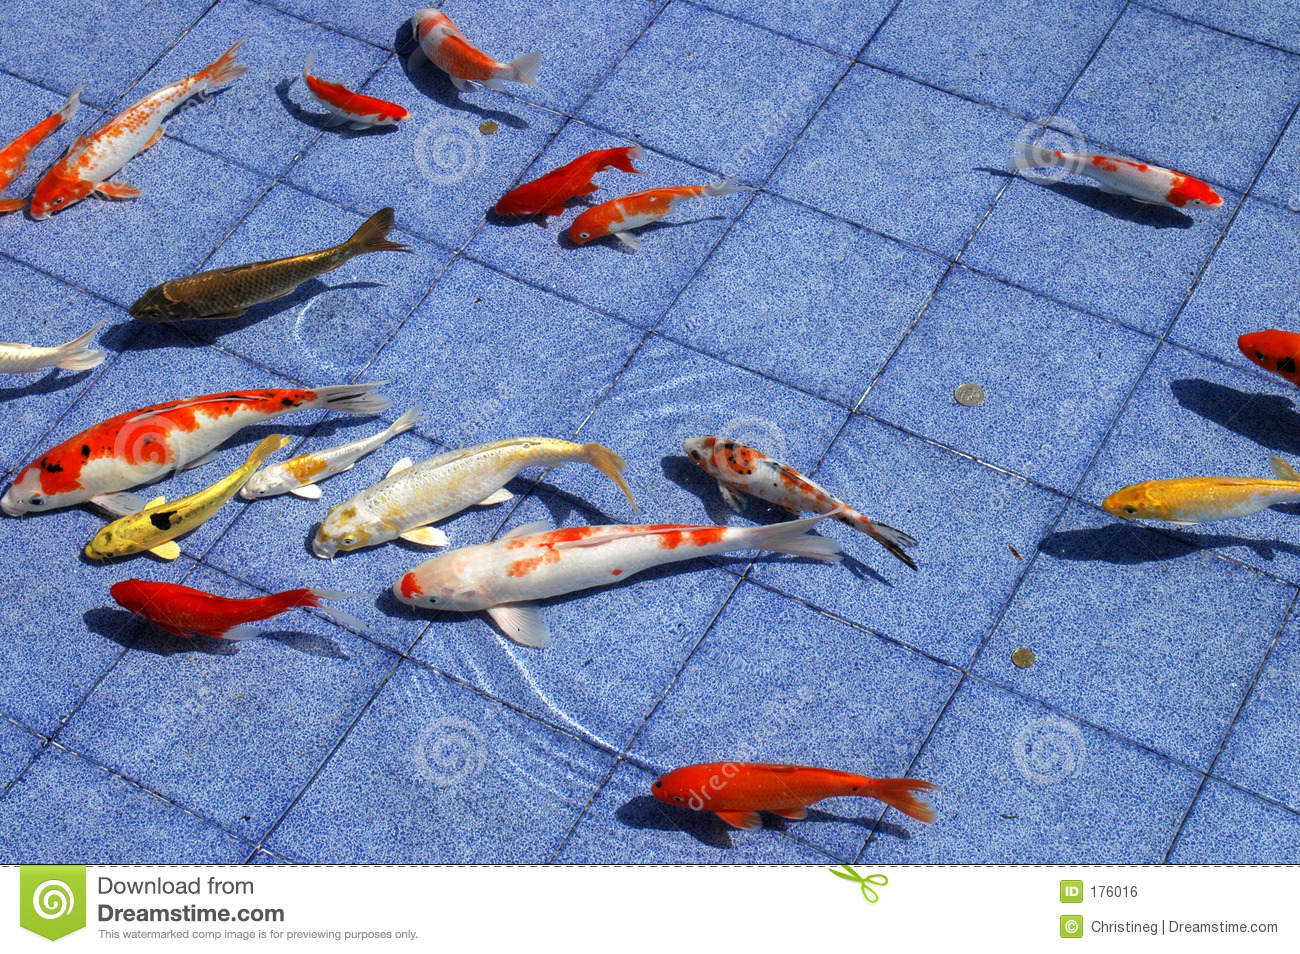 Koi fish in a blue pool royalty free stock image image for Koi swimming pool